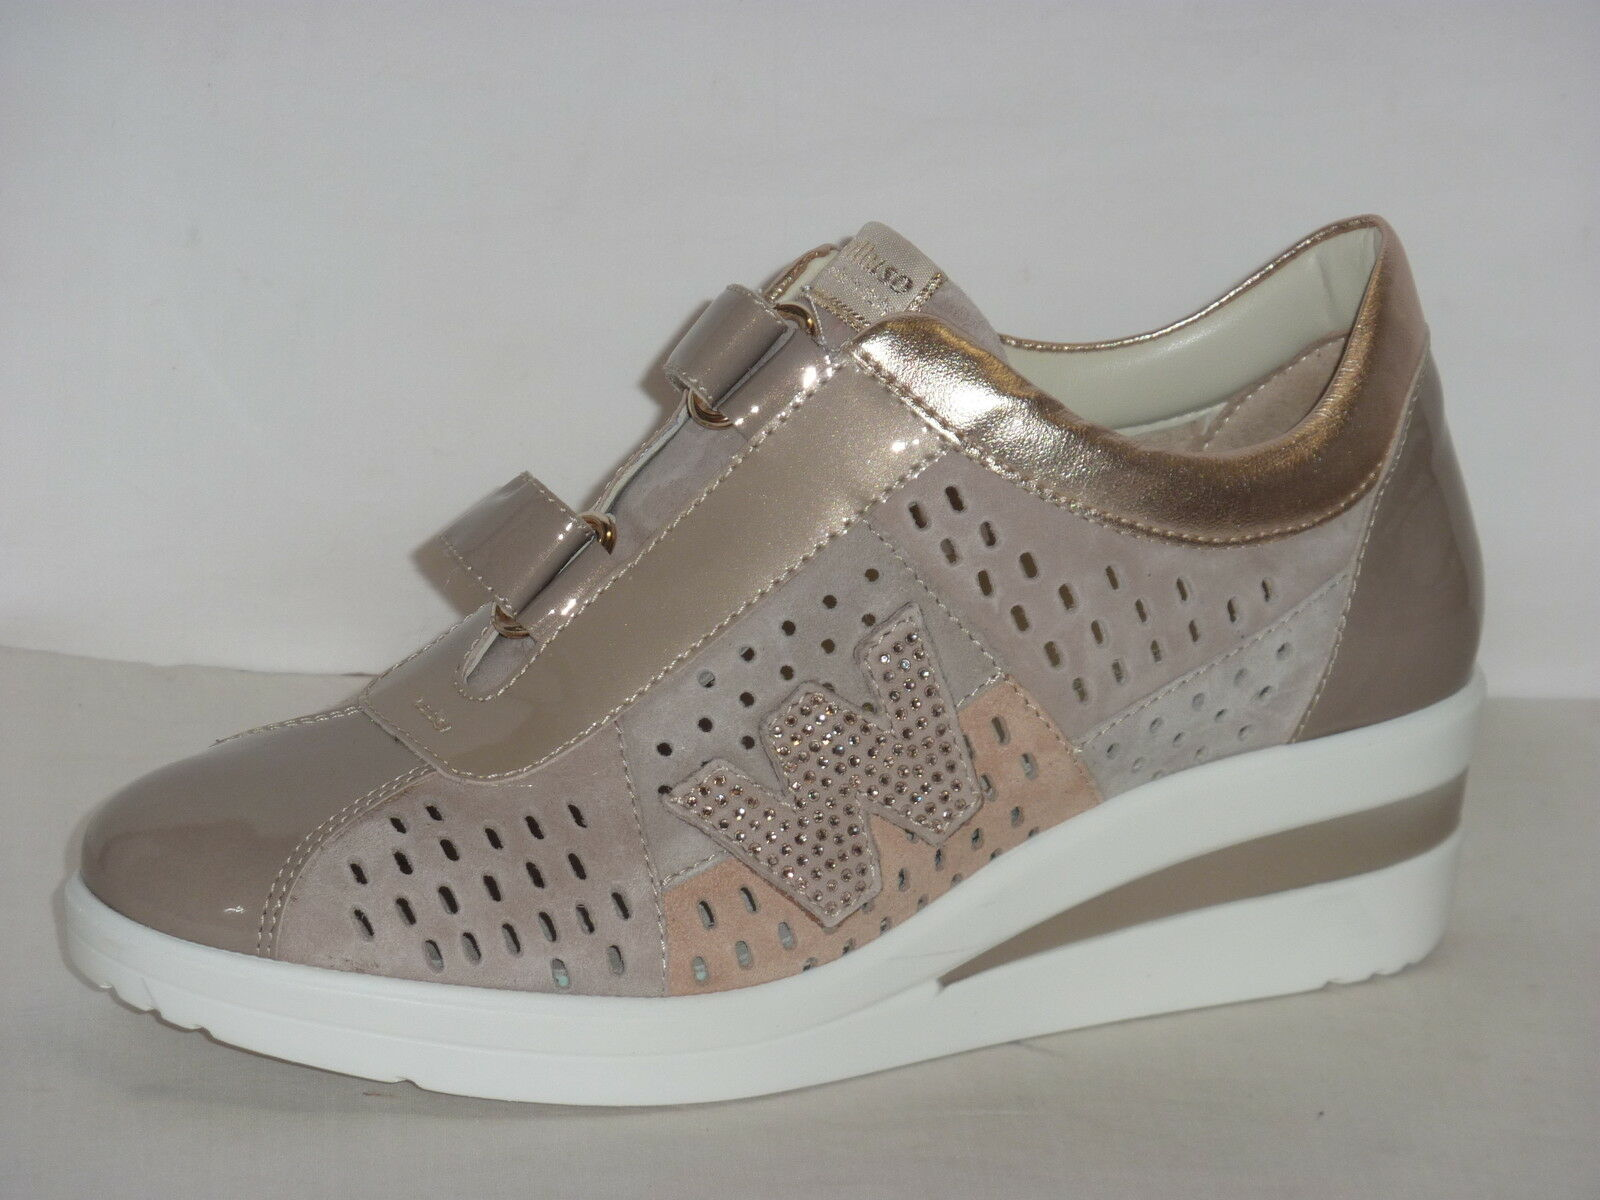 MELLUSO TENNIS COLOR DONNA SNEAKERS COLOR TENNIS CORDA  A STRAPPO PLANTARE ESTRAIBILE n.35 24866a